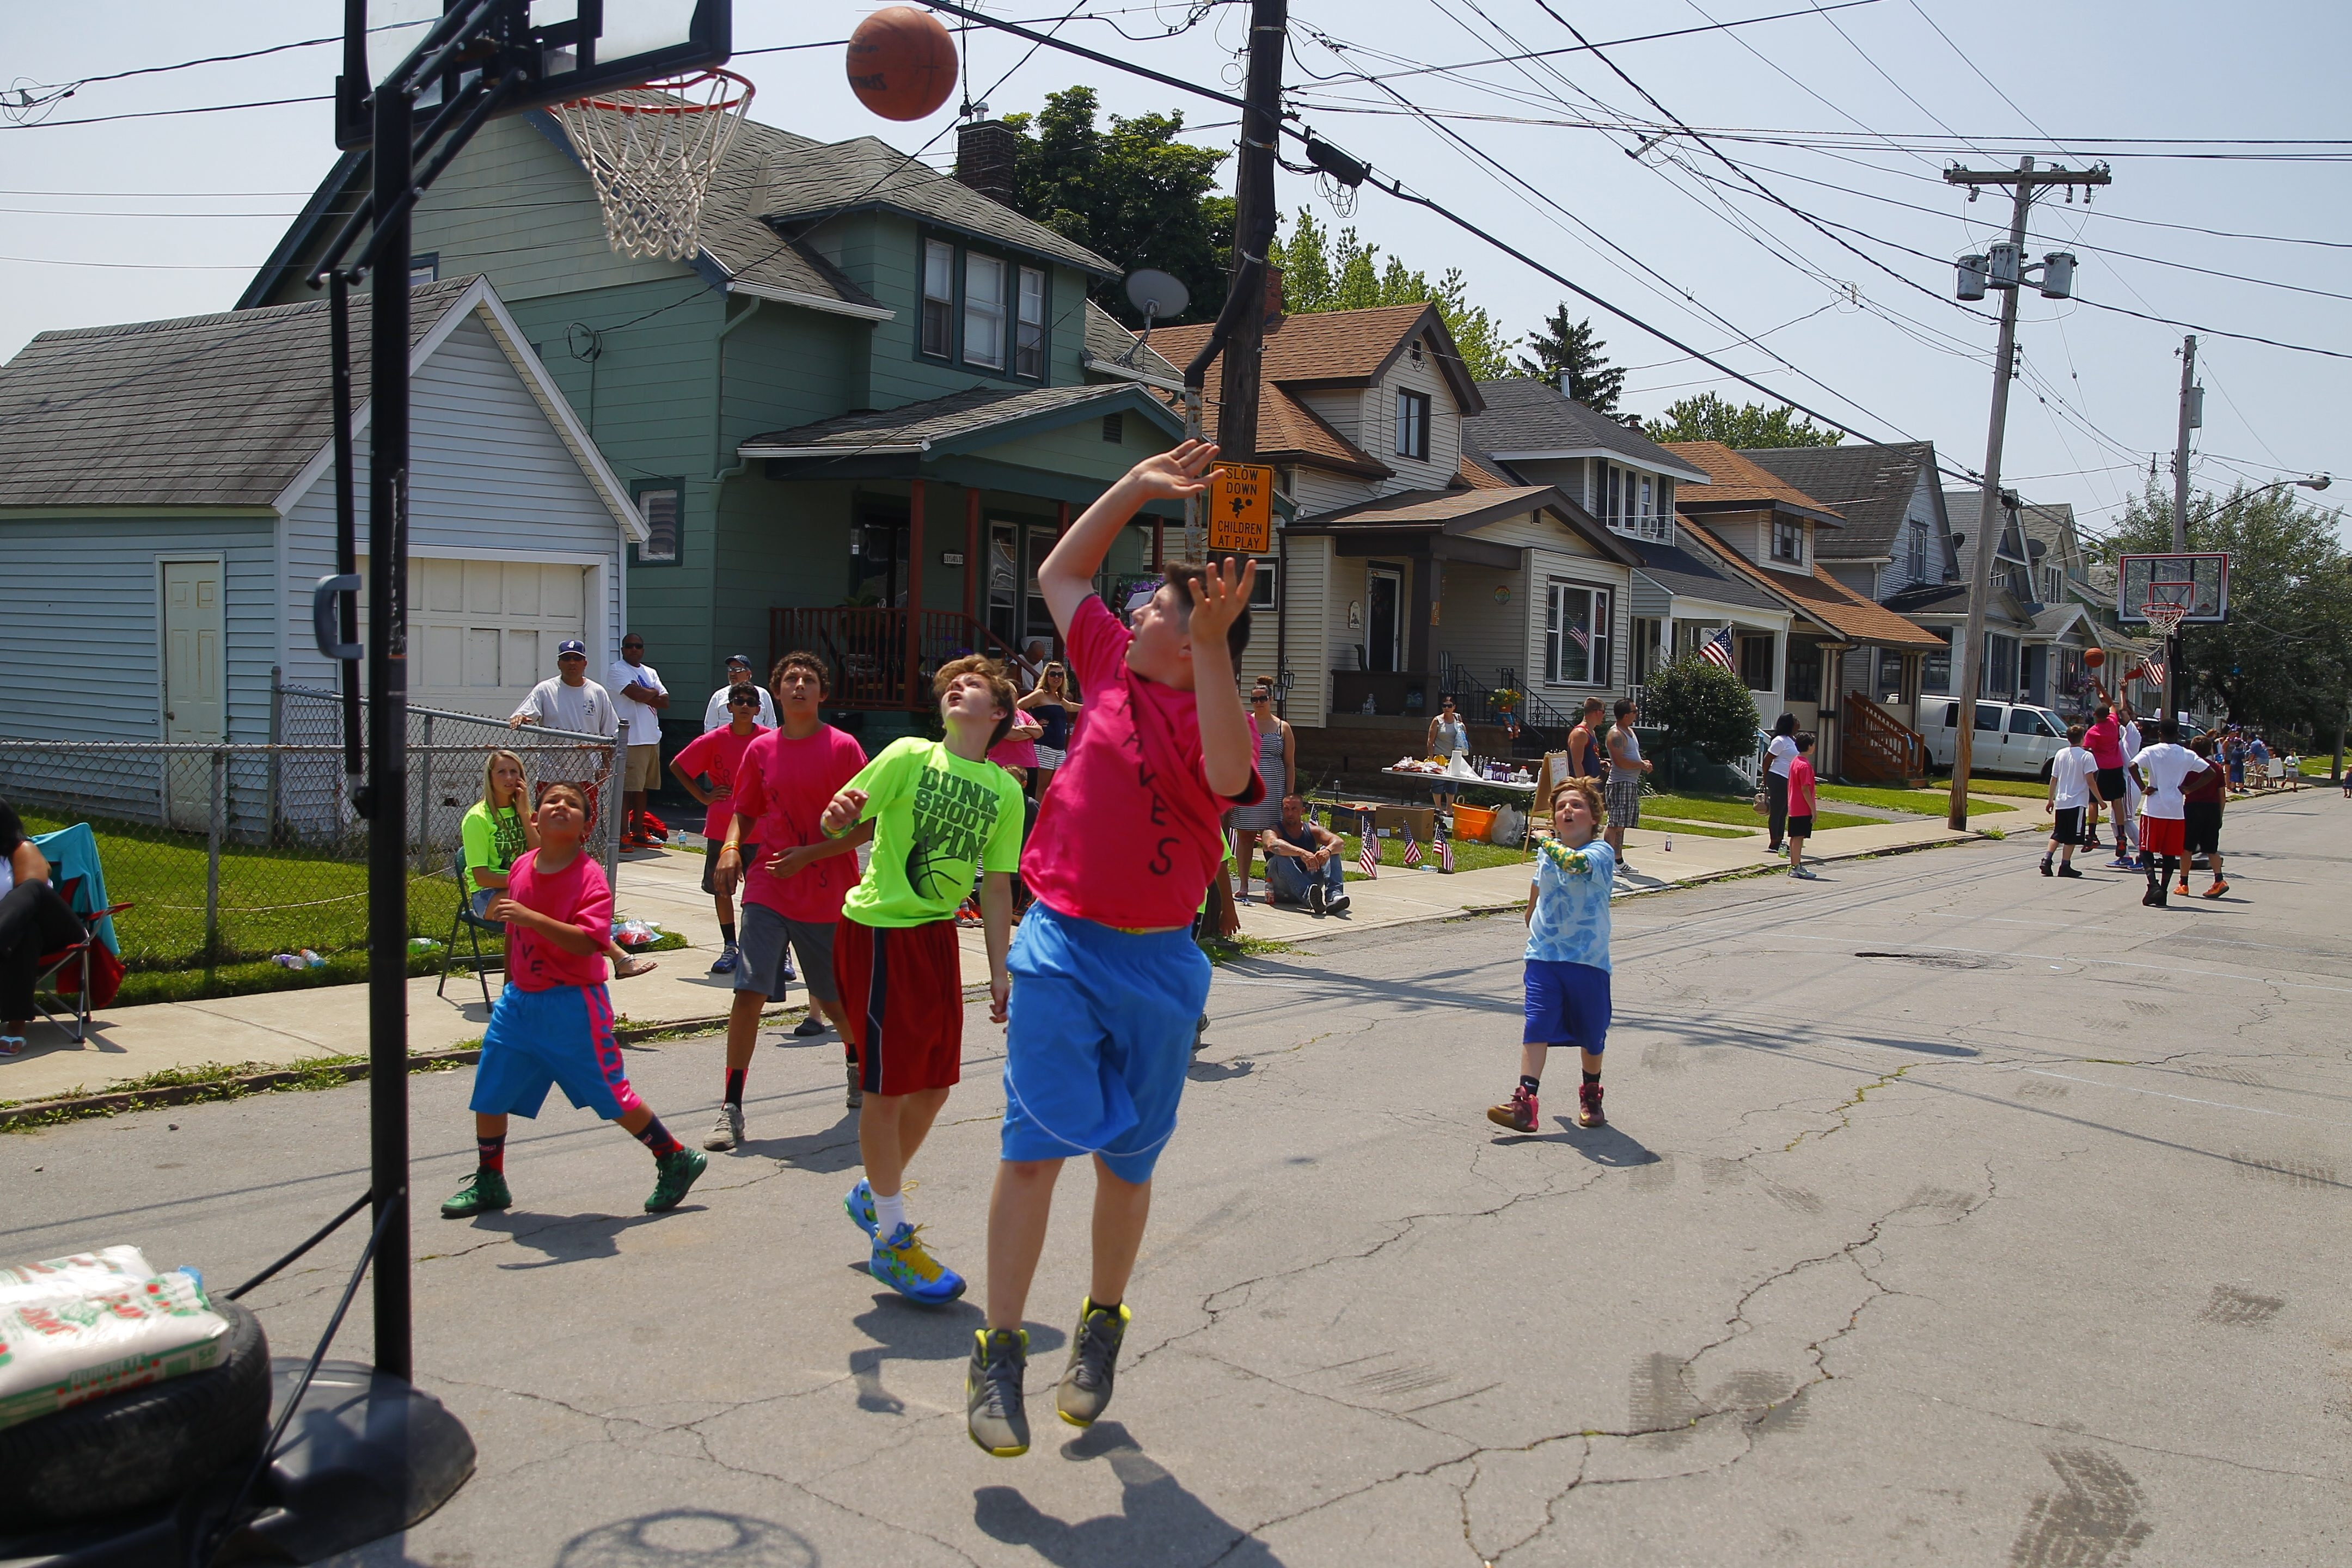 The Braves play the Splash Brothers in a three-on-three basketball tournament  organized by Evan Harper, of Discovery School. Harper hosted the basketball tournament to raise funds for Kayla Iadresin, his 13-year-old classmate with leukemia. The event raised $380.